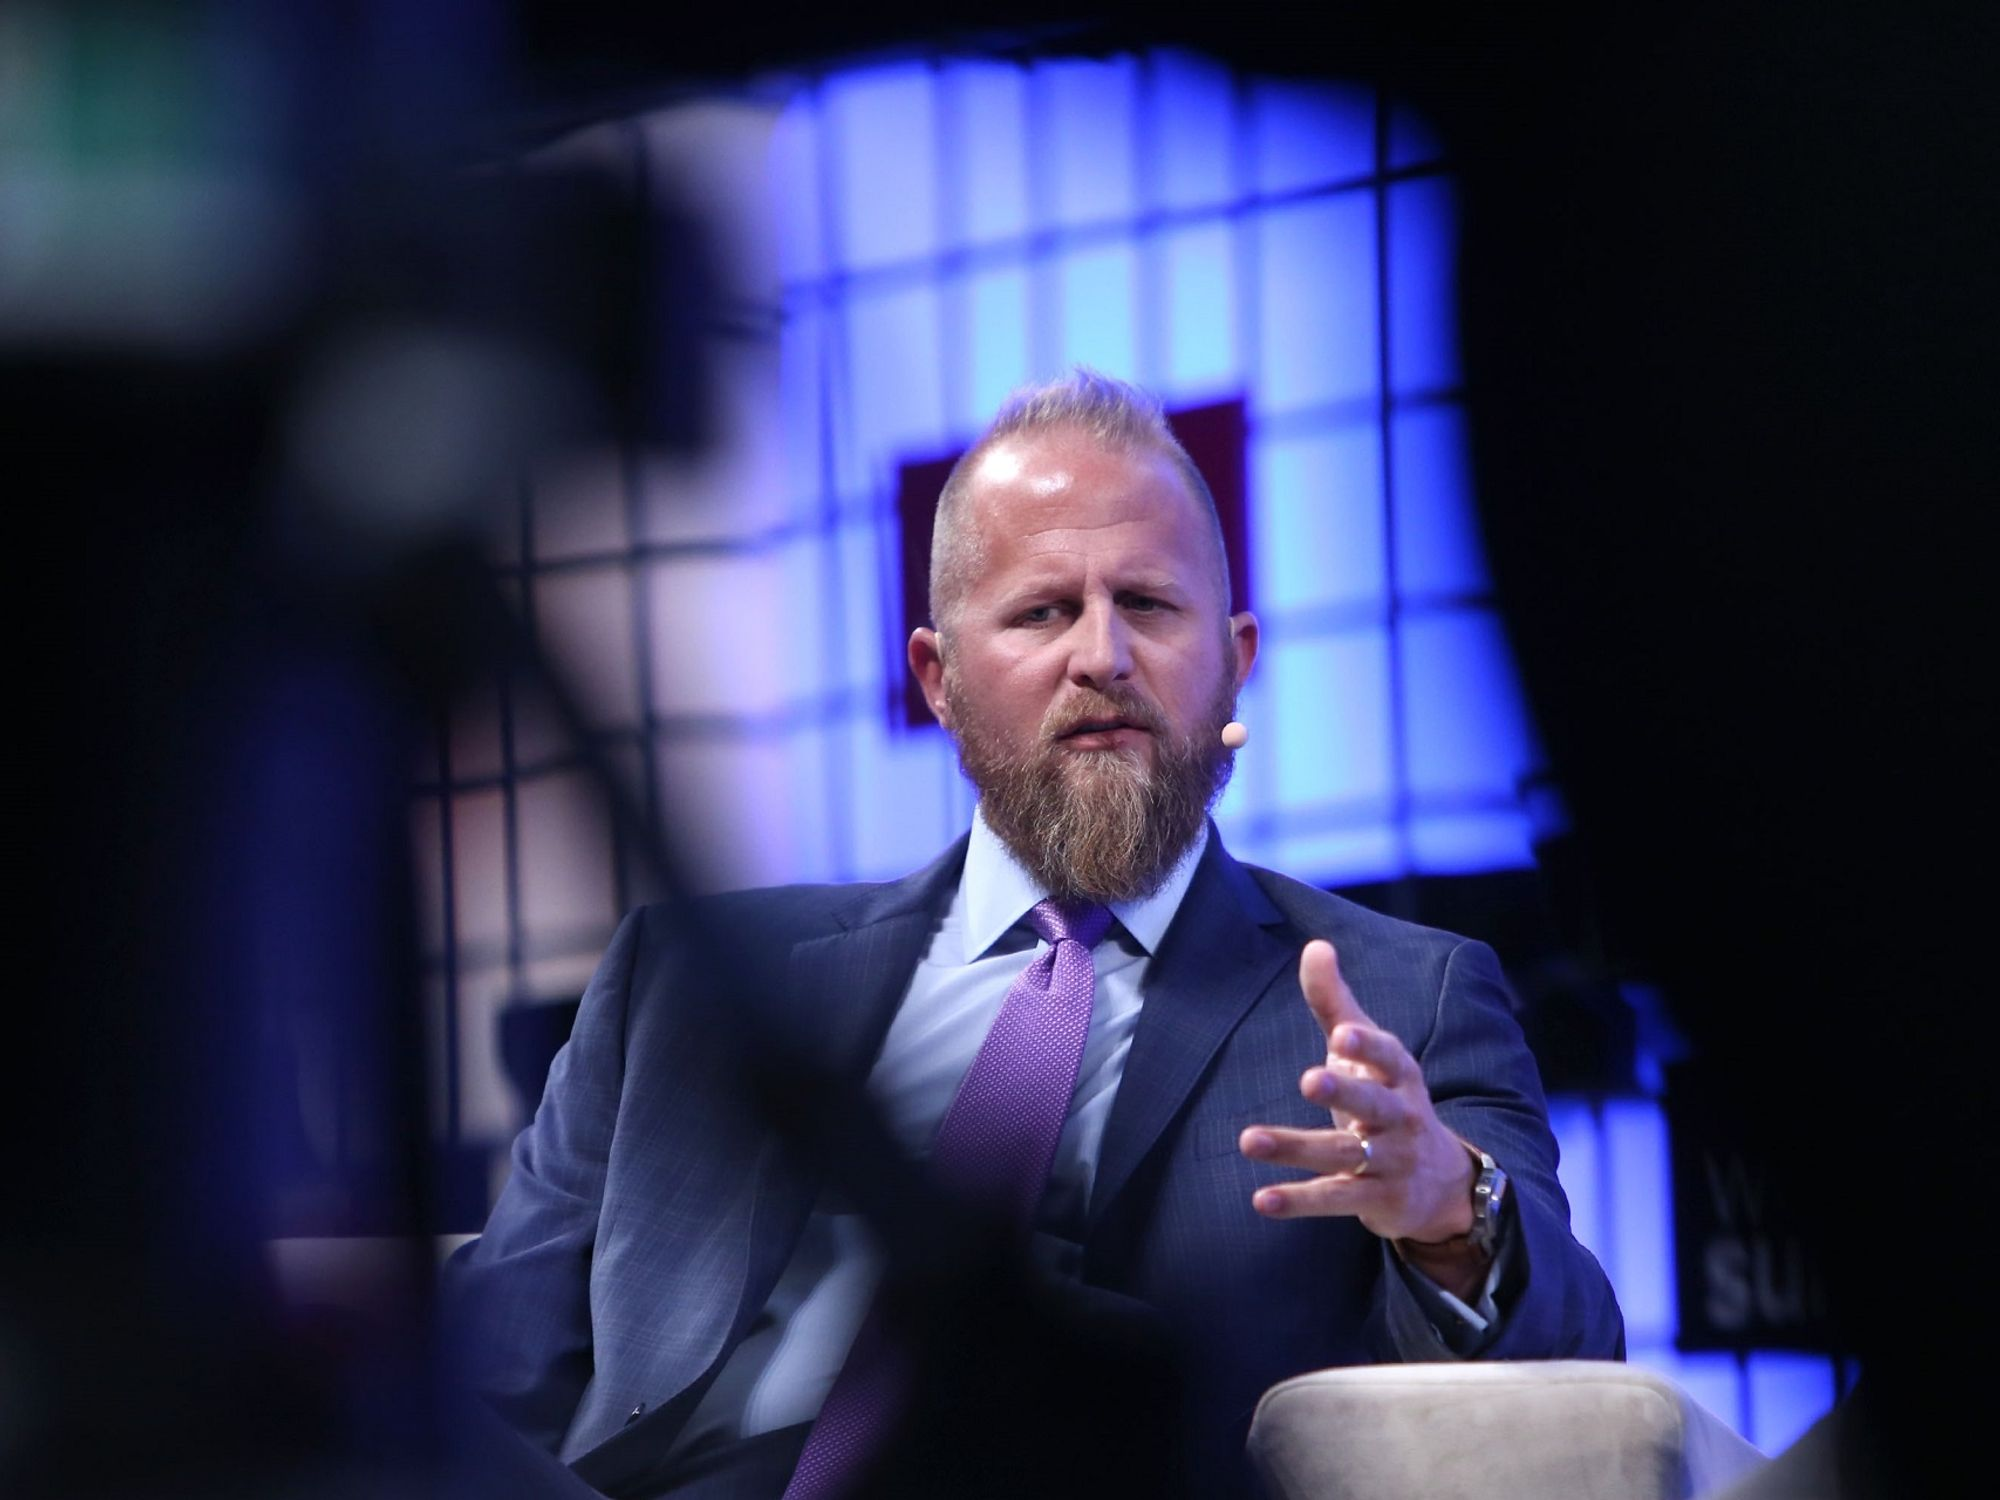 Brad Parscale says he is 'stepping away' from Trump campaign following hospitalization